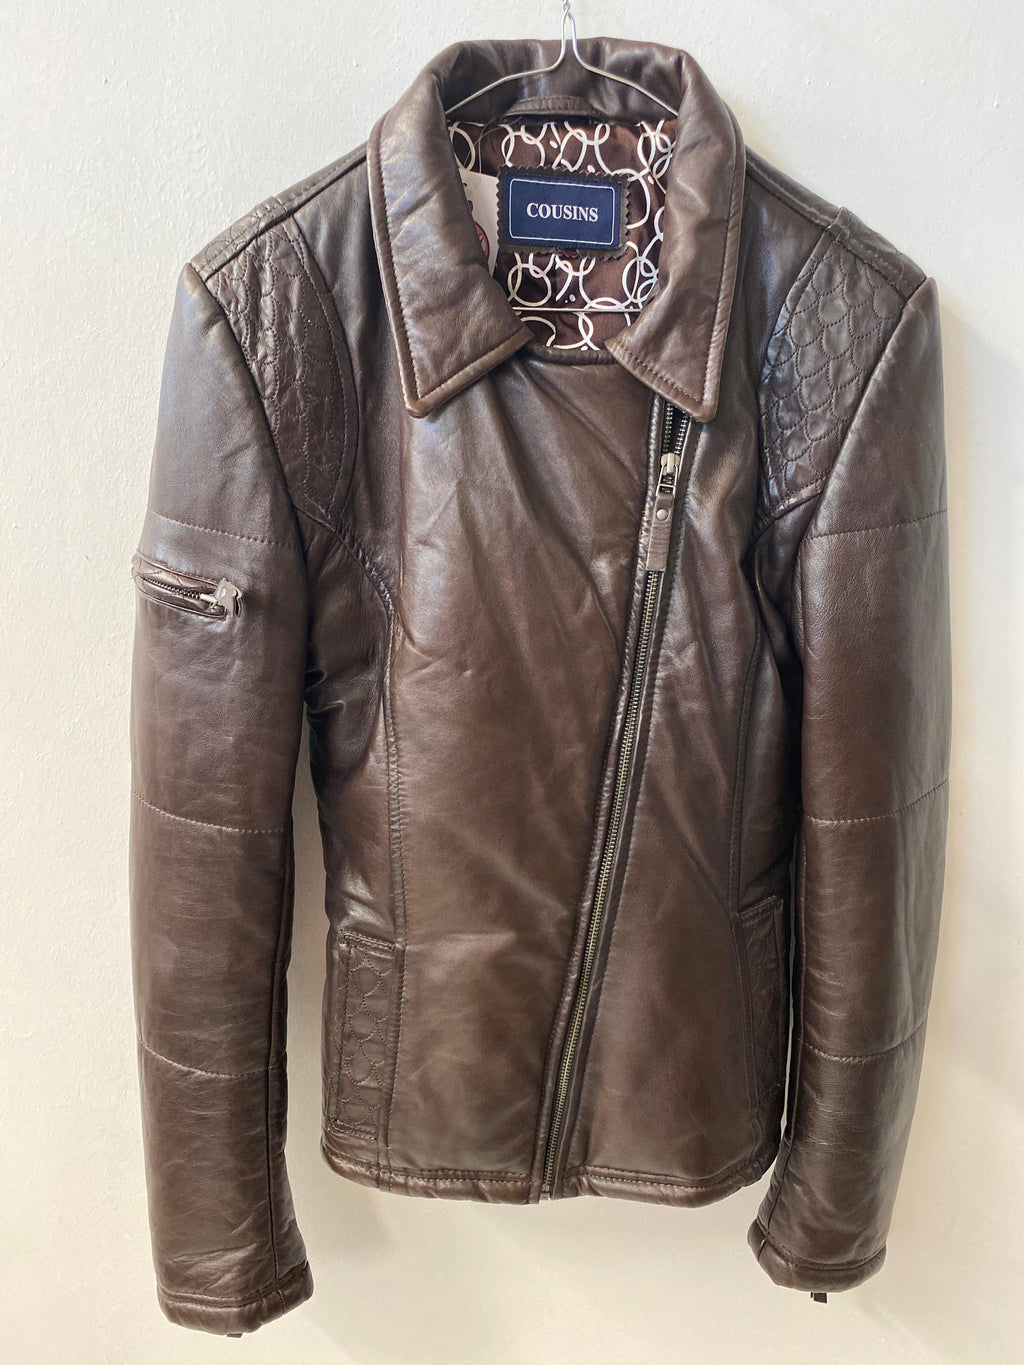 Cousins Brown Leather Biker Style Jacket Padded UK Size 10